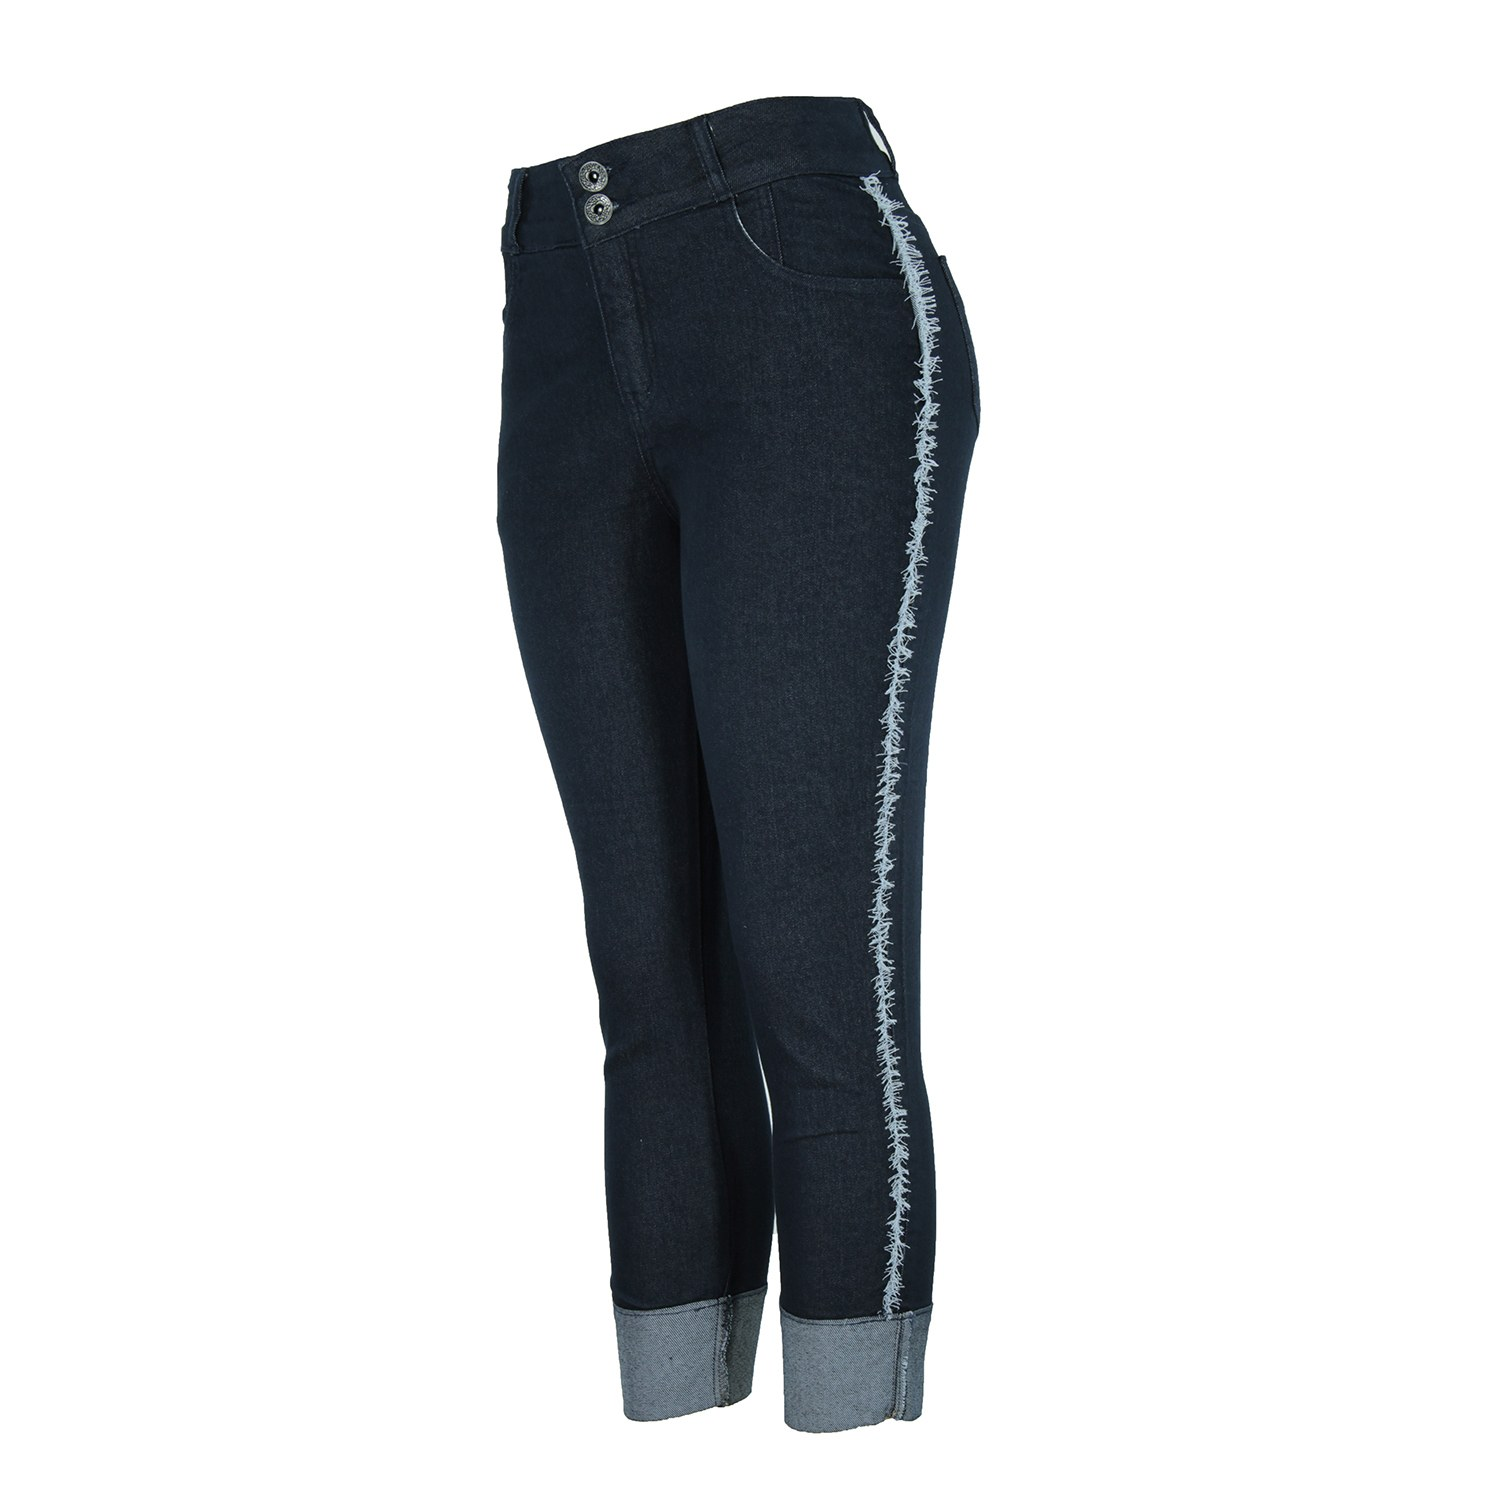 Capri Desfiada Eruption Jeans [1906AM]